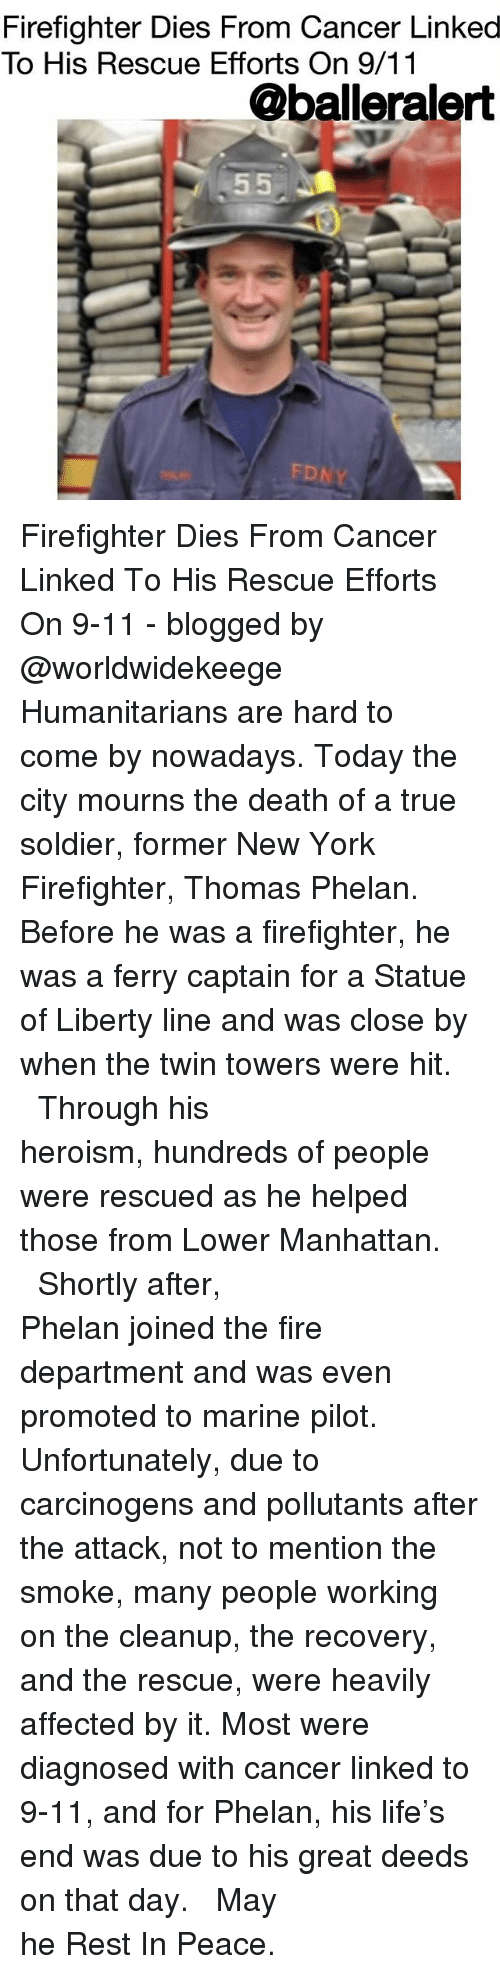 twin towers: Firefighter Dies From Cancer Linked  To His Rescue Efforts On 9/11  @balleralert  FD Firefighter Dies From Cancer Linked To His Rescue Efforts On 9-11 - blogged by @worldwidekeege ⠀⠀⠀⠀⠀⠀⠀⠀⠀ ⠀⠀⠀⠀⠀⠀⠀⠀⠀ Humanitarians are hard to come by nowadays. Today the city mourns the death of a true soldier, former New York Firefighter, Thomas Phelan. Before he was a firefighter, he was a ferry captain for a Statue of Liberty line and was close by when the twin towers were hit. ⠀⠀⠀⠀⠀⠀⠀⠀⠀ ⠀⠀⠀⠀⠀⠀⠀⠀⠀ Through his heroism, hundreds of people were rescued as he helped those from Lower Manhattan. ⠀⠀⠀⠀⠀⠀⠀⠀⠀ ⠀⠀⠀⠀⠀⠀⠀⠀⠀ Shortly after, Phelan joined the fire department and was even promoted to marine pilot. Unfortunately, due to carcinogens and pollutants after the attack, not to mention the smoke, many people working on the cleanup, the recovery, and the rescue, were heavily affected by it. Most were diagnosed with cancer linked to 9-11, and for Phelan, his life's end was due to his great deeds on that day. ⠀⠀⠀⠀⠀⠀⠀⠀⠀ ⠀⠀⠀⠀⠀⠀⠀⠀⠀ May he Rest In Peace.